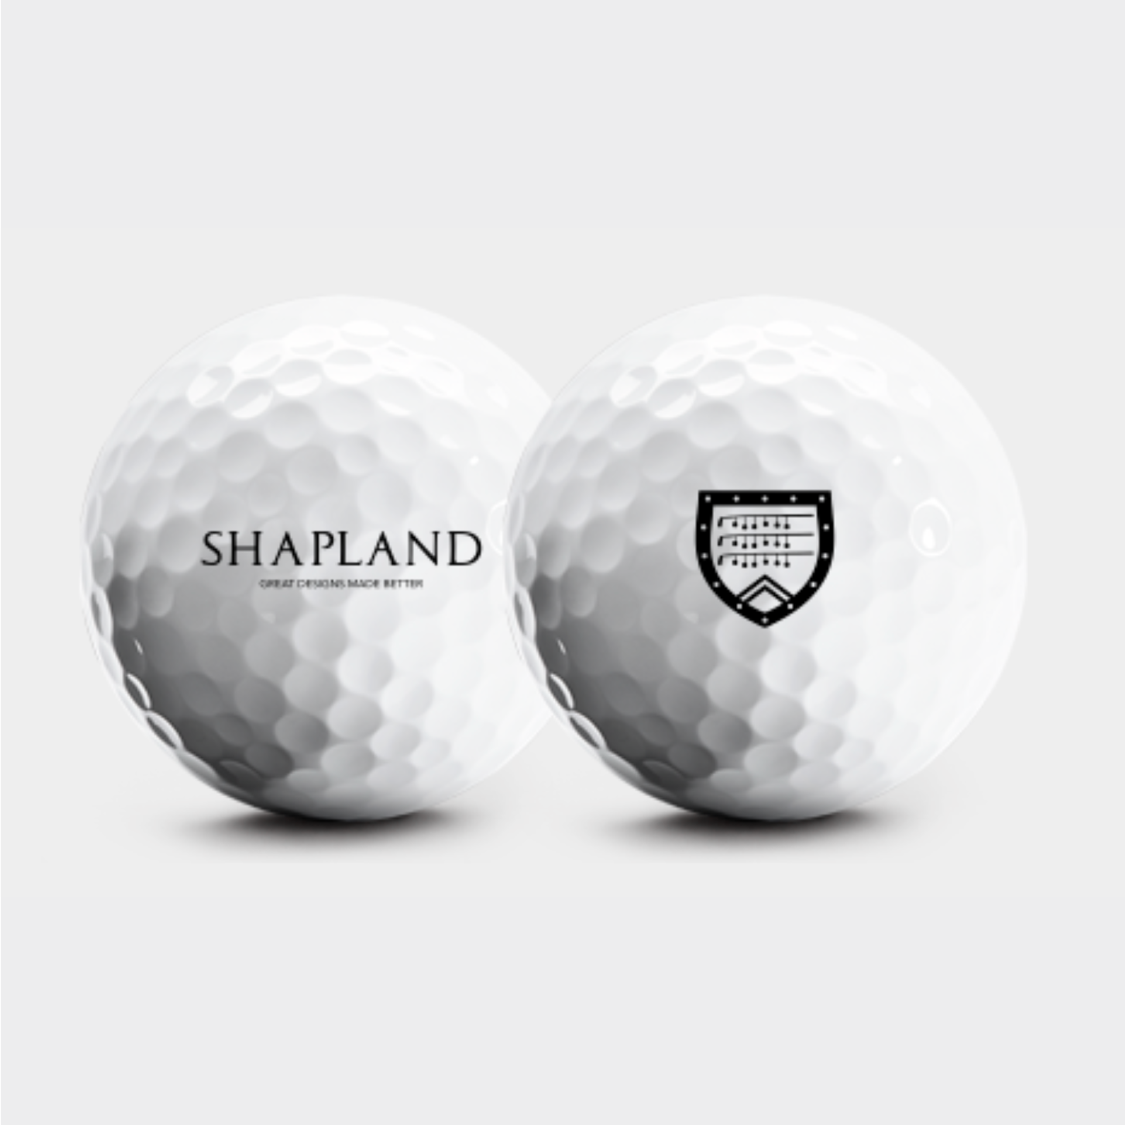 Shapland logo golf balls by Snell